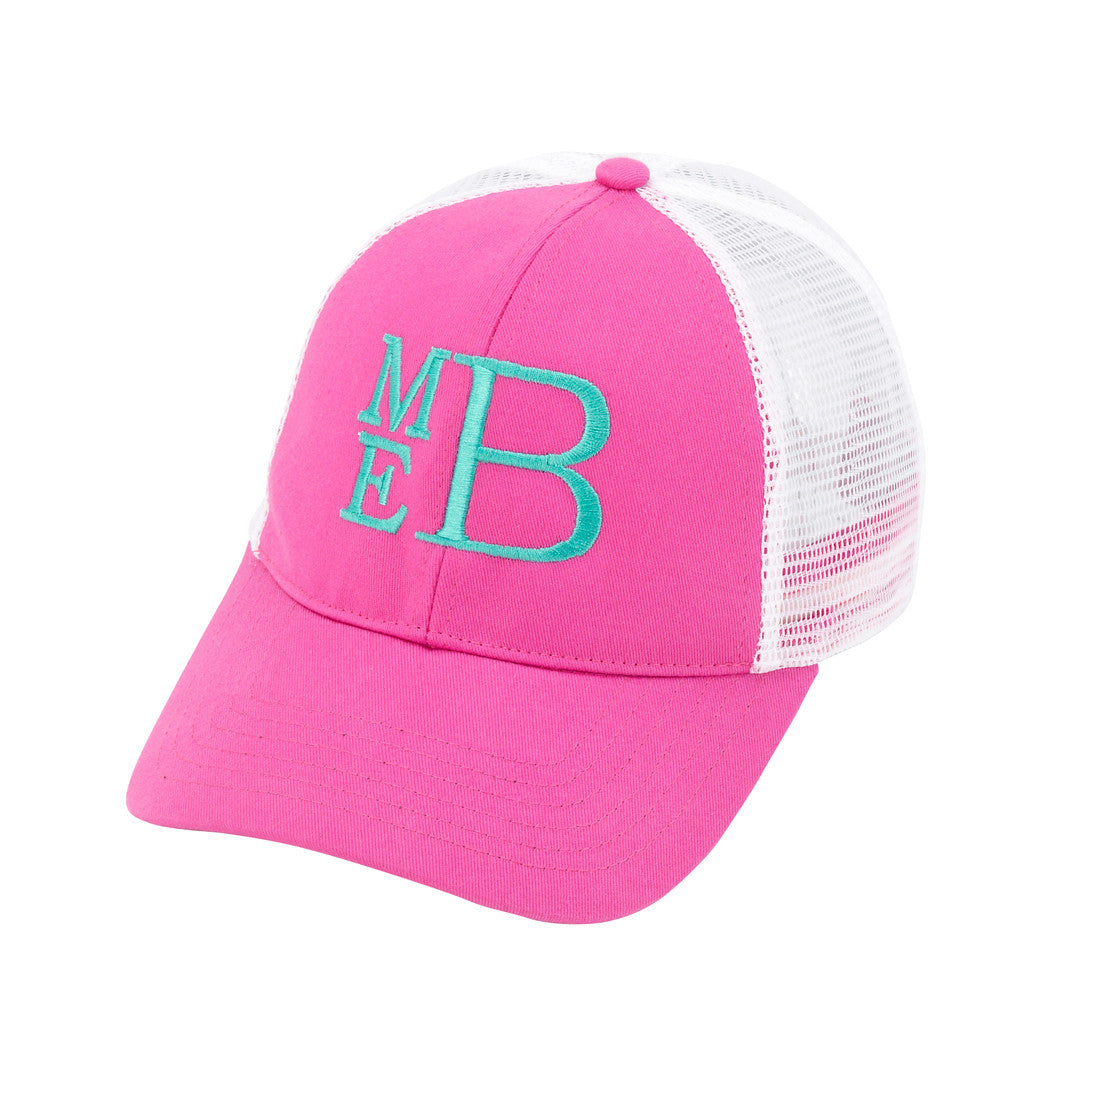 Trucker Hat - Hot Pink - Ciao Bella Boutique